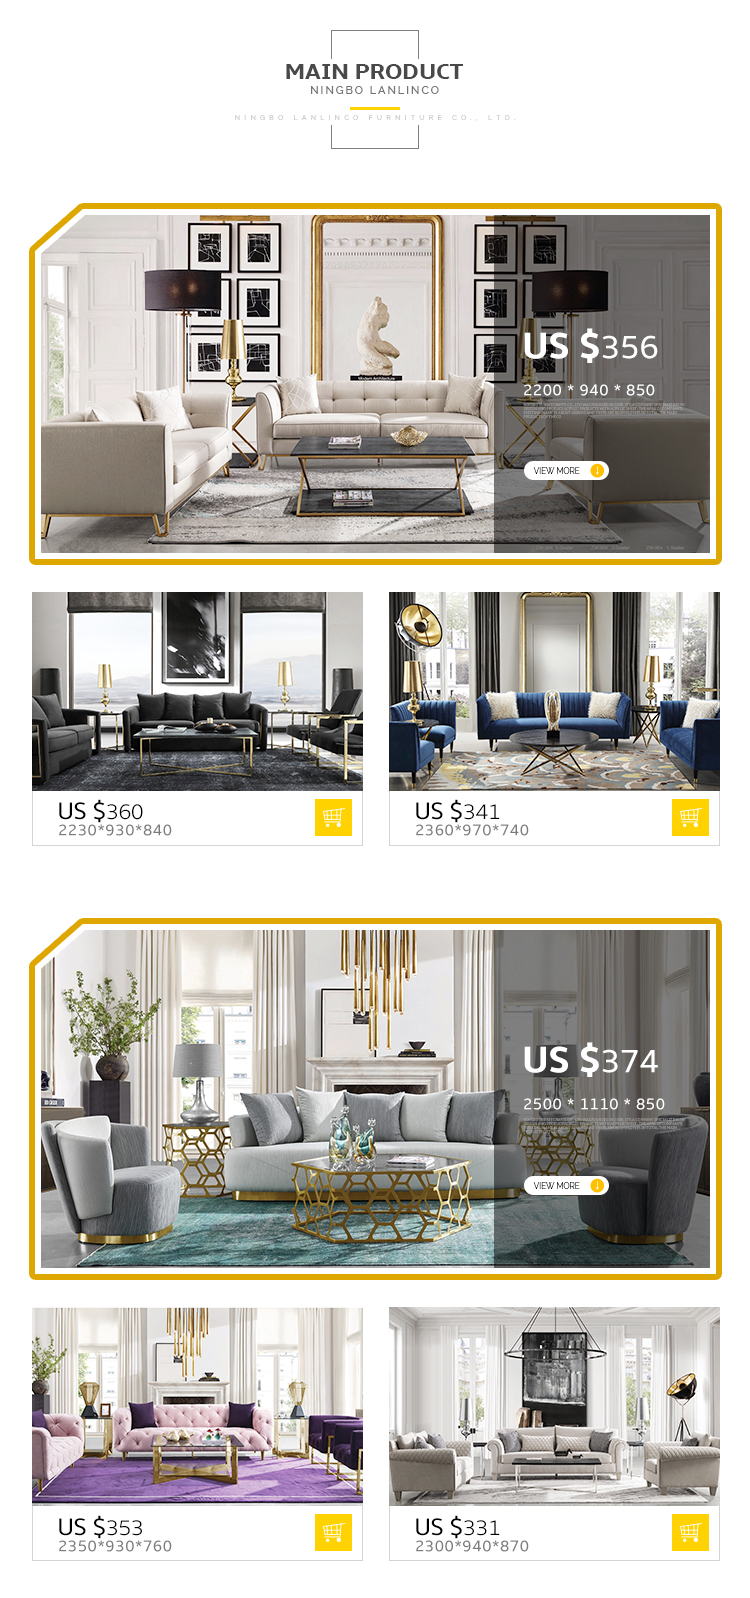 Modern Design Sofa Set Frame Sofa Combination Living Room Home Furniture Sectional Couch - Pinzheng Furniture 9